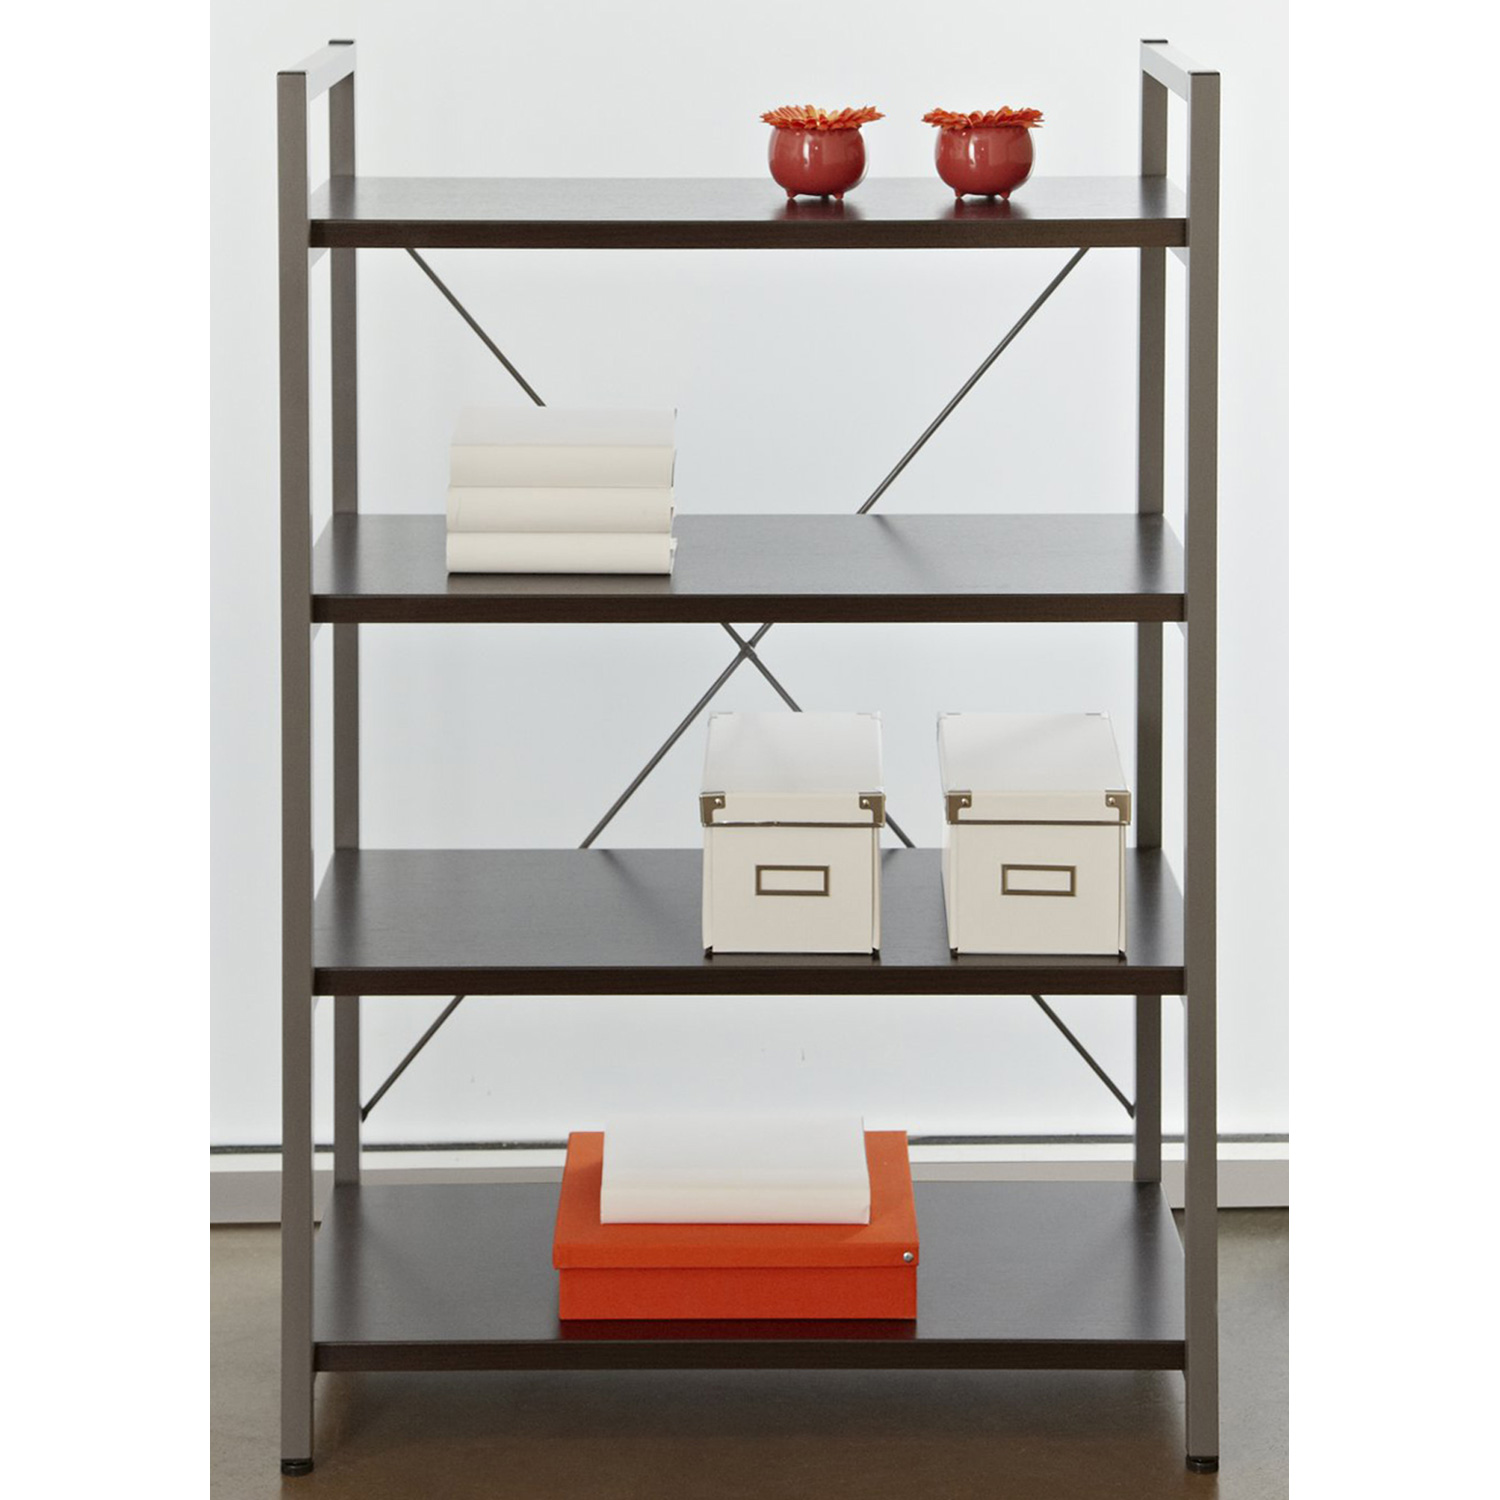 4-Shelf Bookcase - Metal Frame, Espresso - UNIQ-X213-ESP